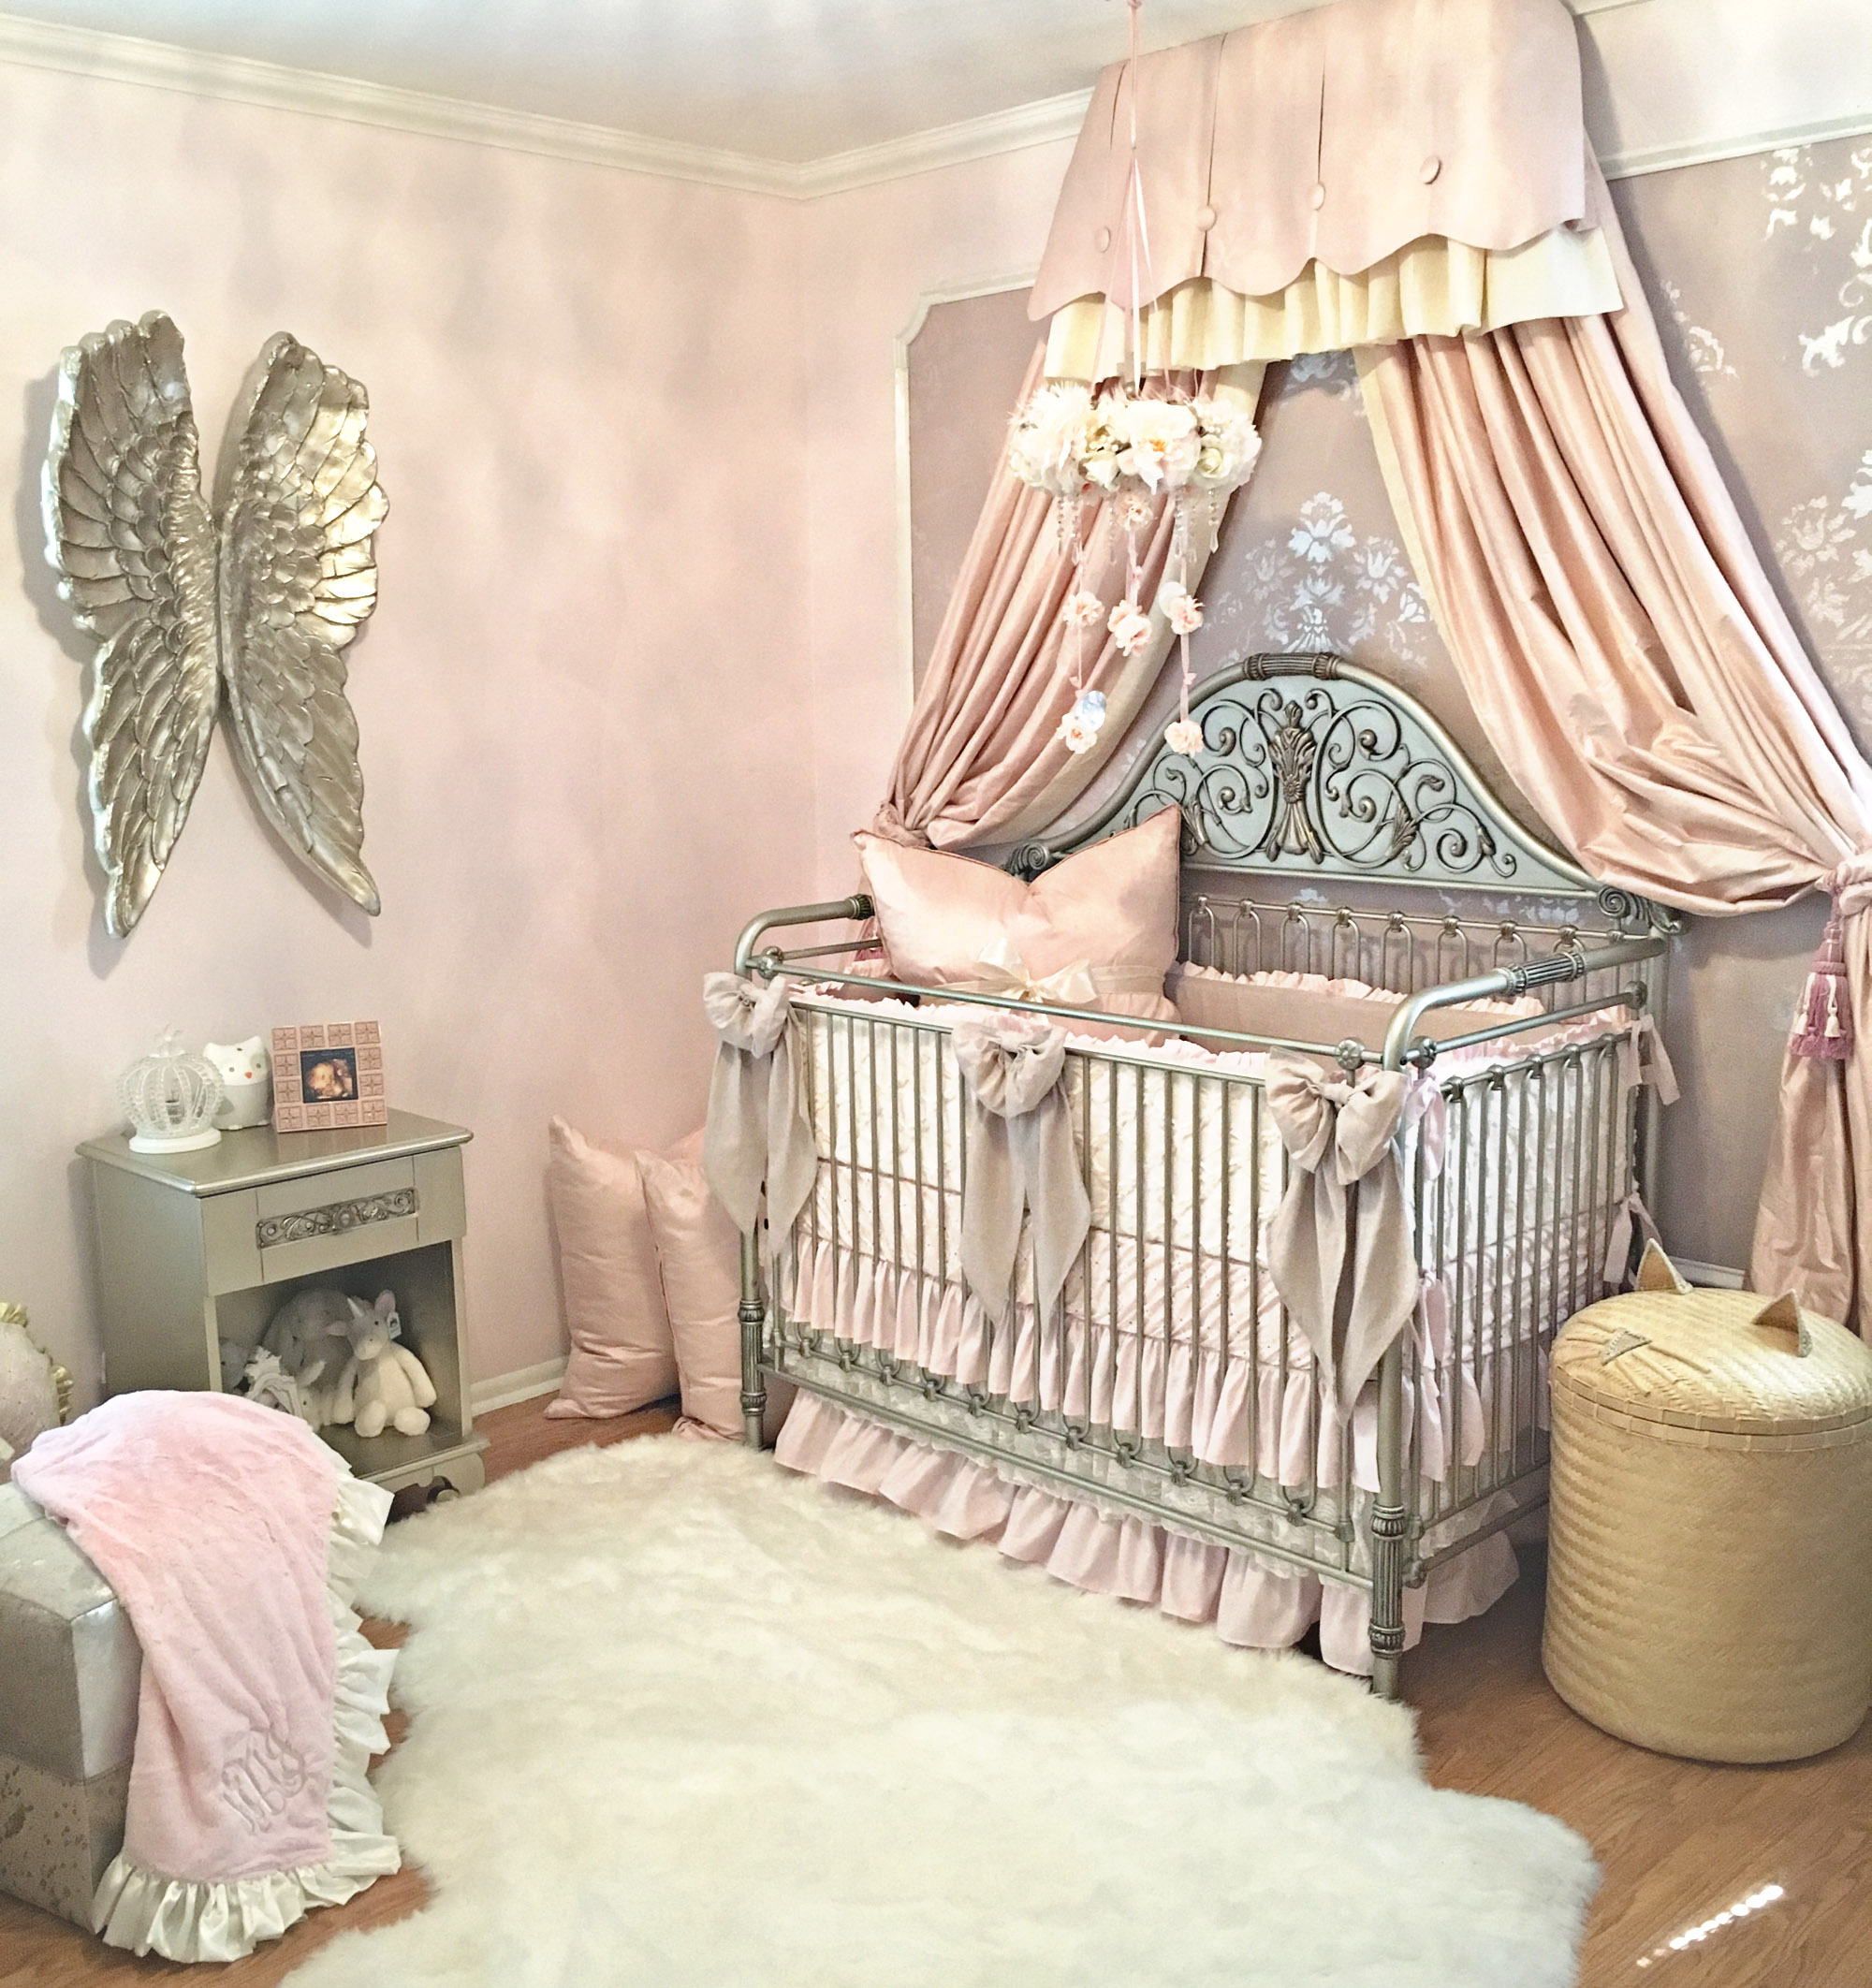 20 Beatifull Decor Ideas For Your Baby S Room: Harlow's Vintage Glam Blush Nursery